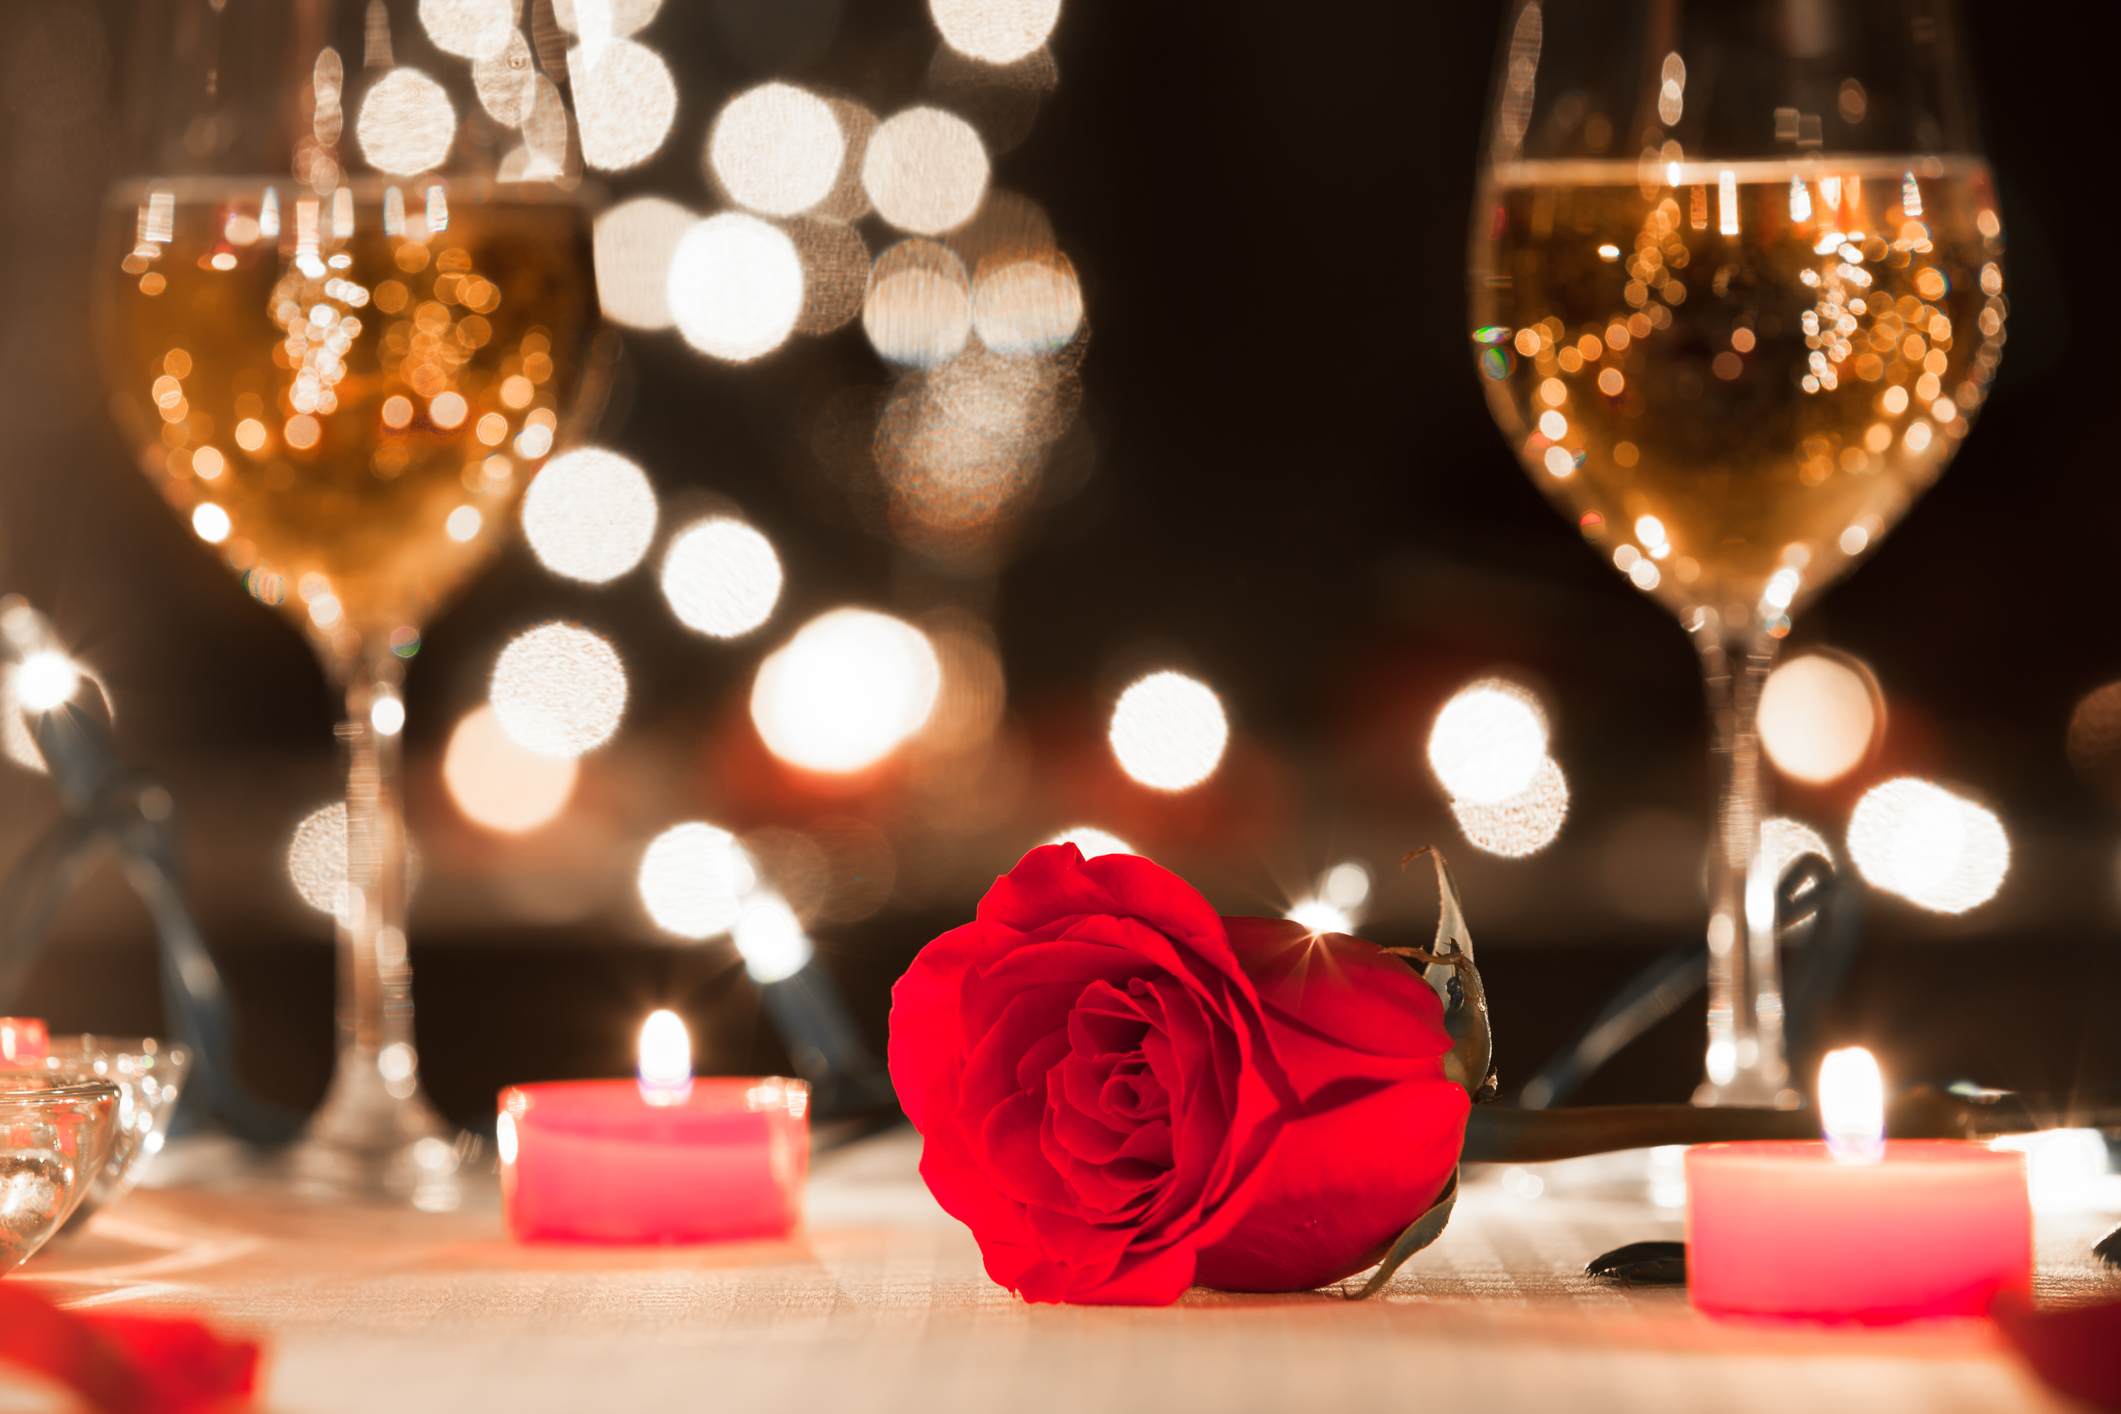 Romantic candlelight dinner in luxury restaurant